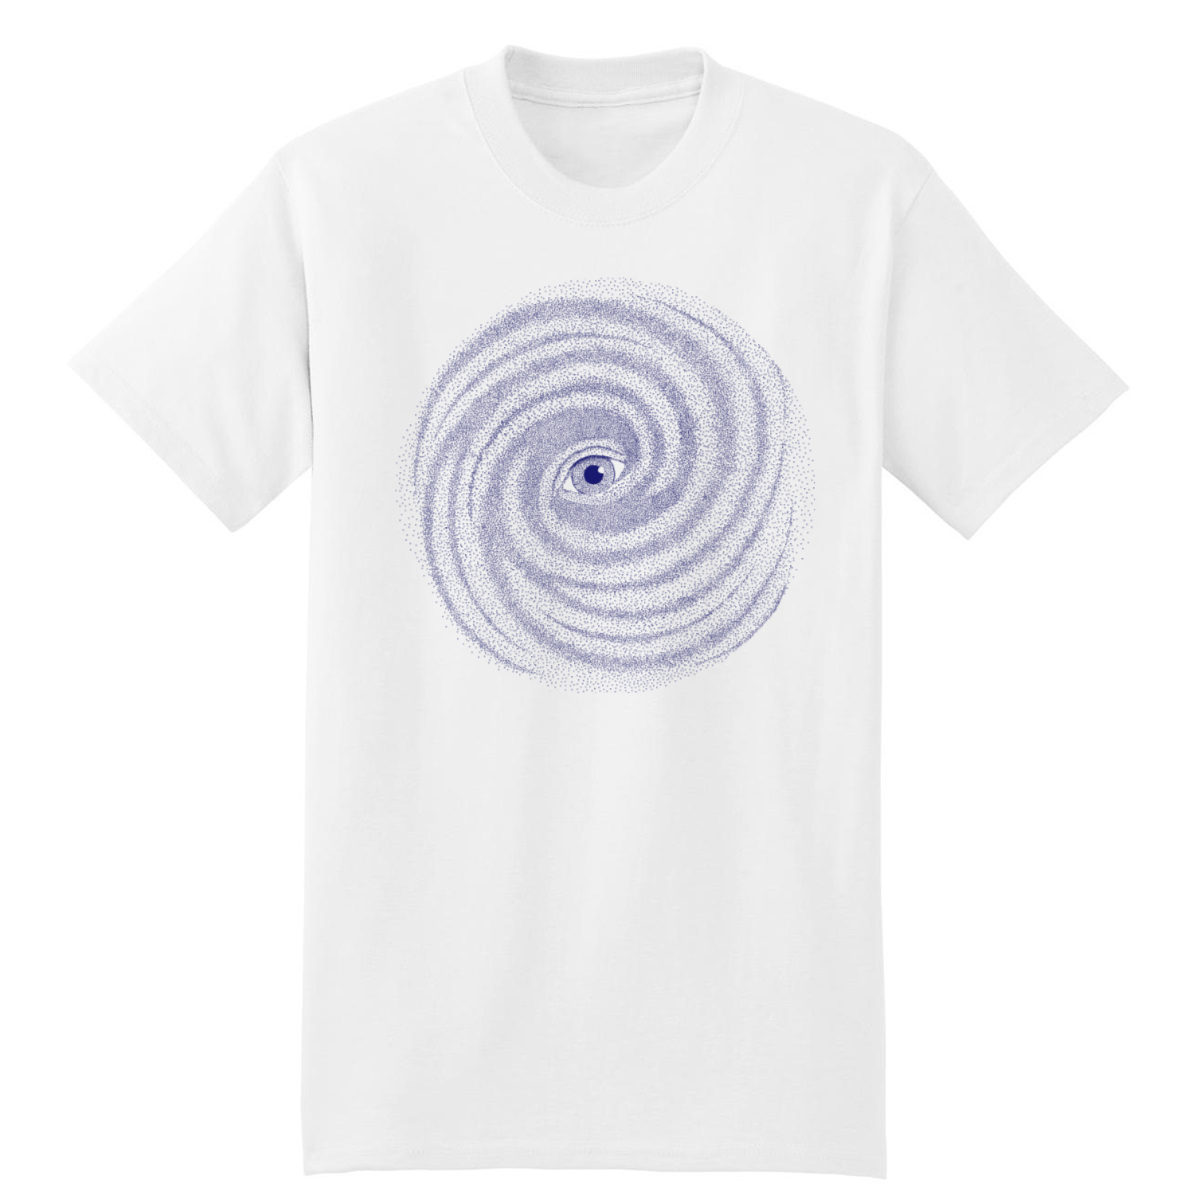 Reflections in the Eye T-Shirts